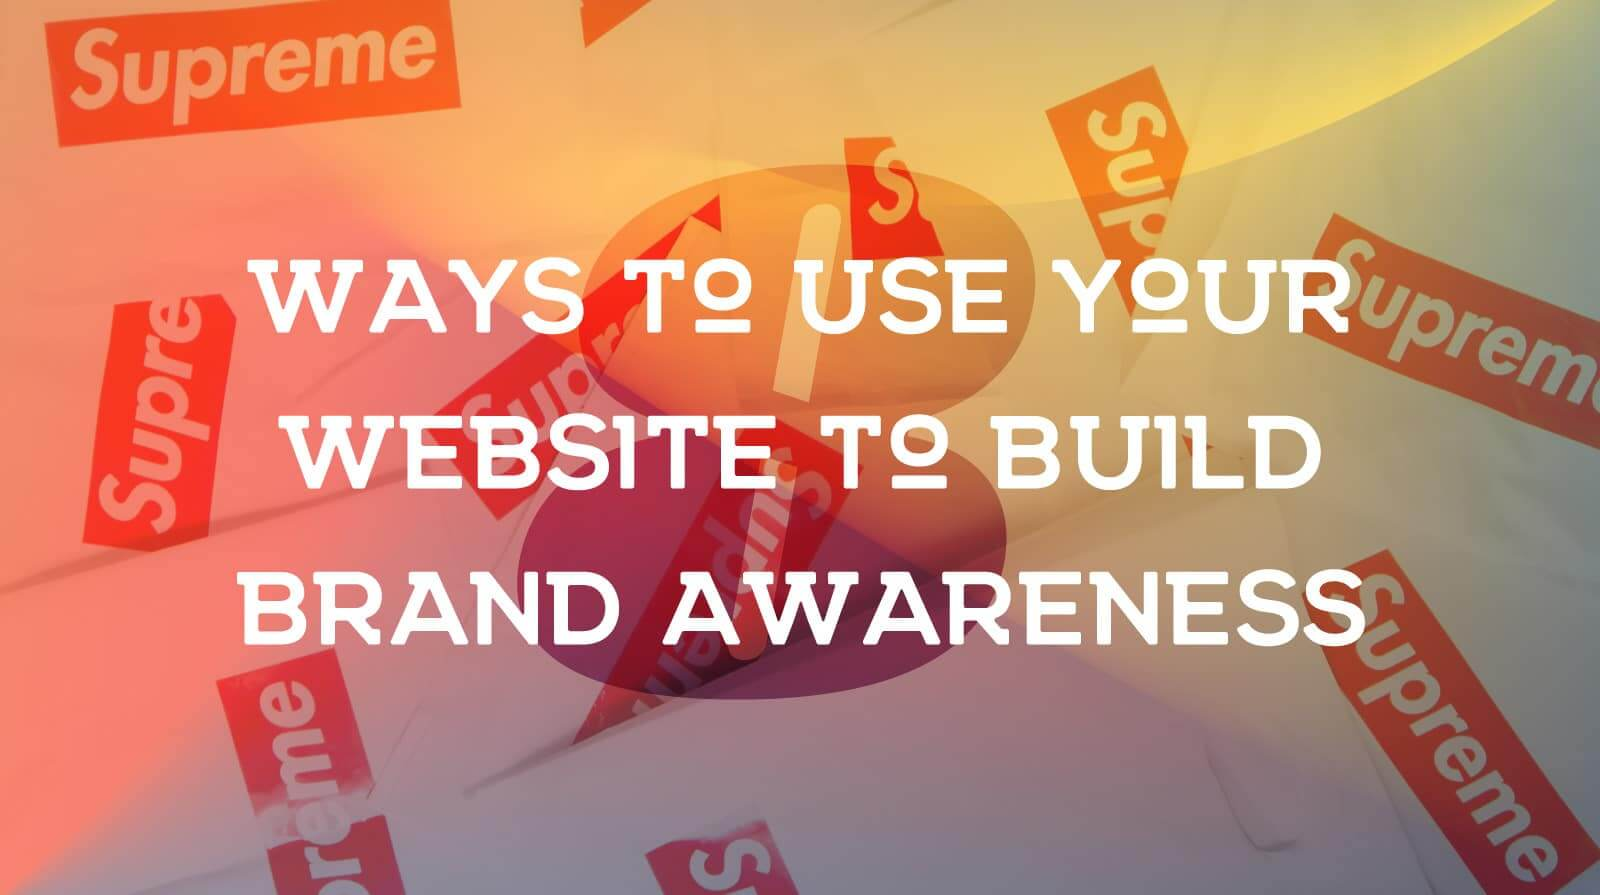 8 Ways to Use Your Website to Build Brand Awareness